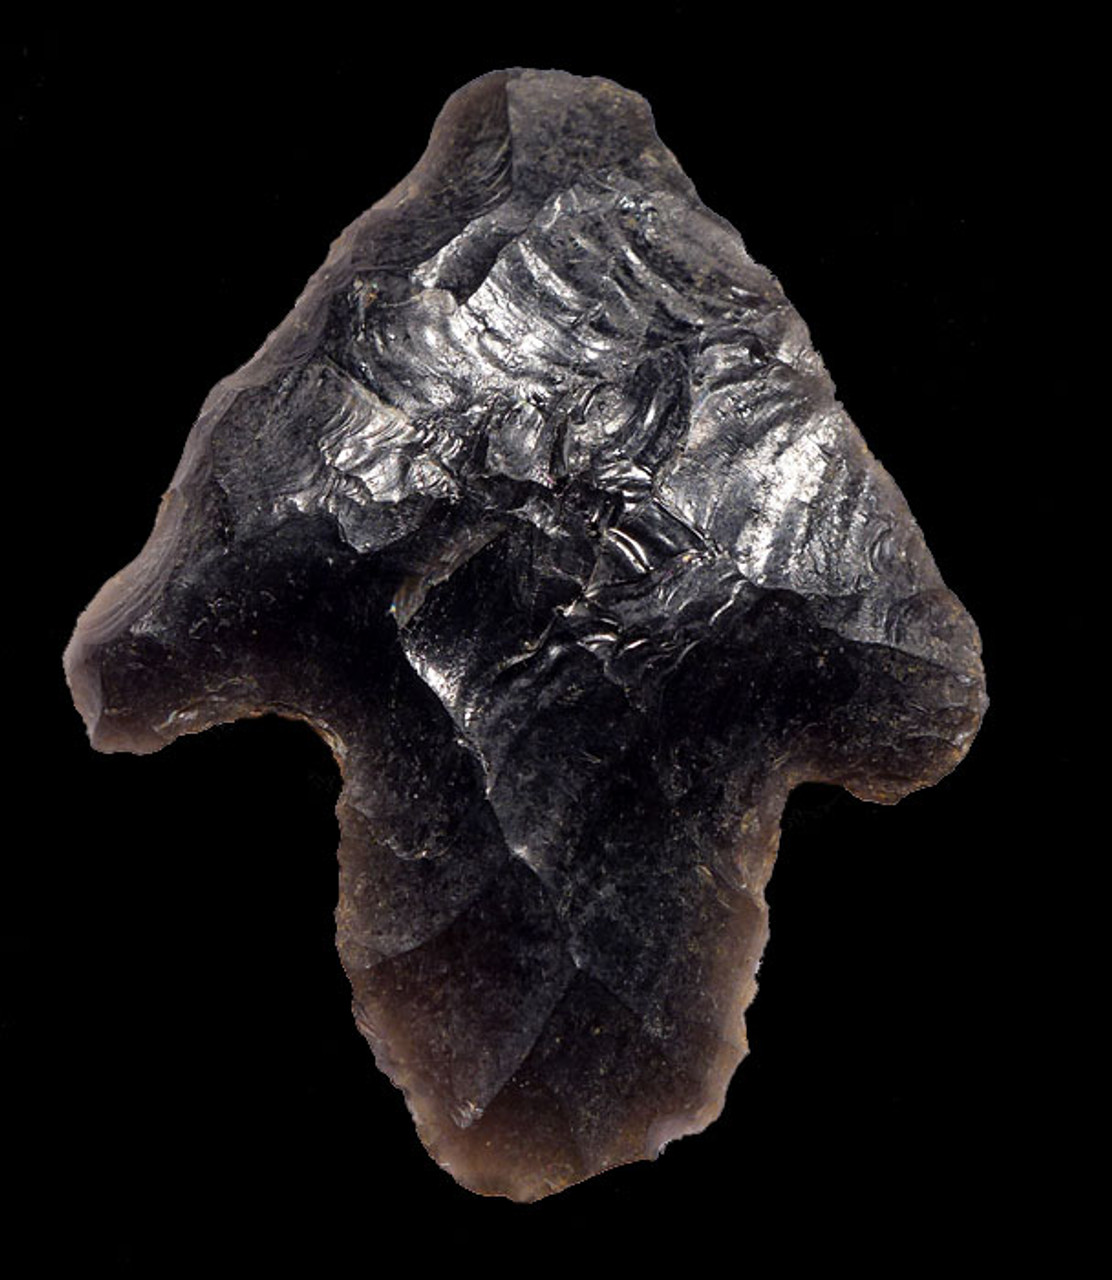 PC245 - SUPERBLY MADE PRE-COLUMBIAN OBSIDIAN BARBED ATLATL HEAD PROJECTILE POINT WITH PROVENANCE